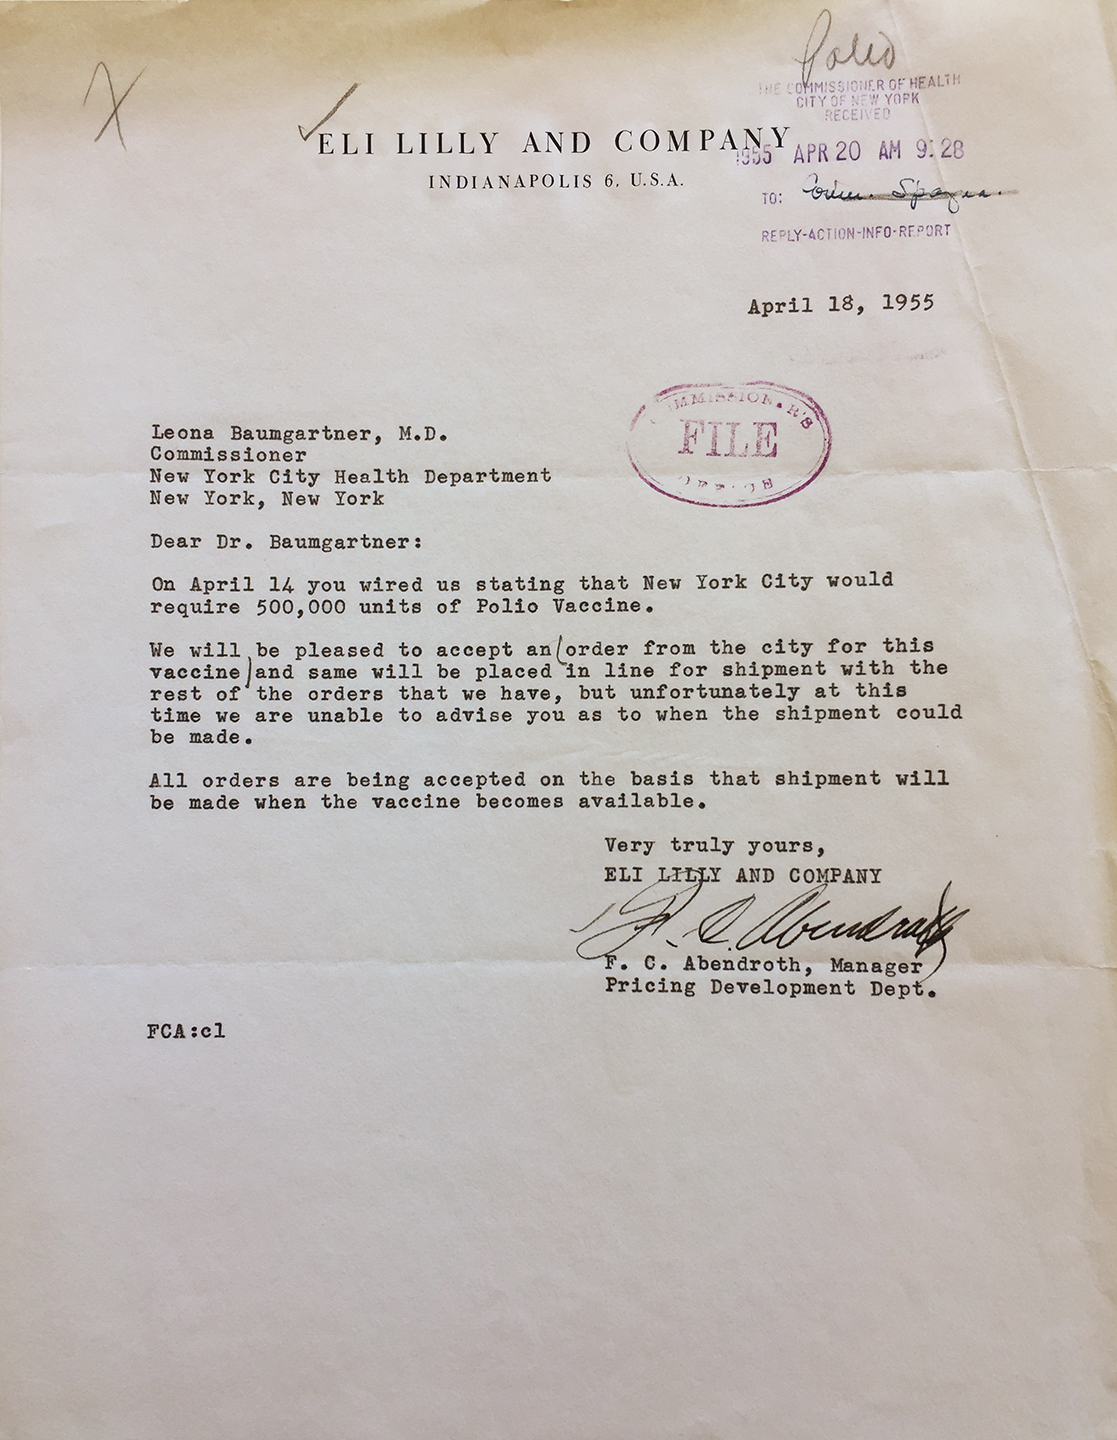 Letter From Pharmaceutical Manufacturer Eli Lilly Confirming Commissioner  Baumgartner's Order For 500,000 Units Of The Polio